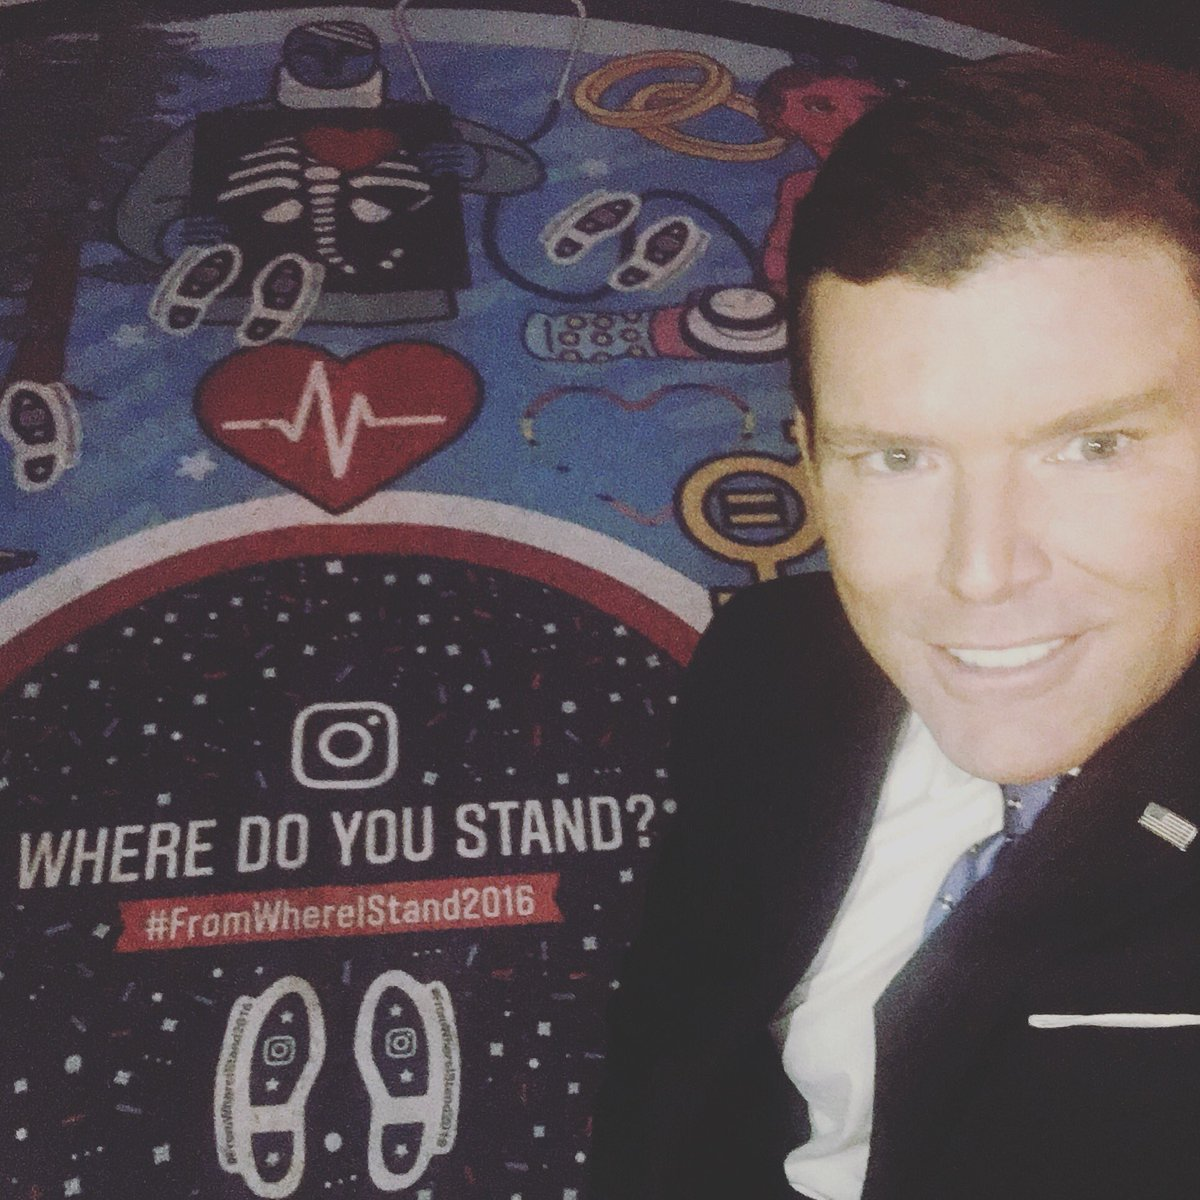 Join me tonight 6pmET on #SpecialReport to hear more abt @instagram #fromwhereistand2016 project! #foxnews